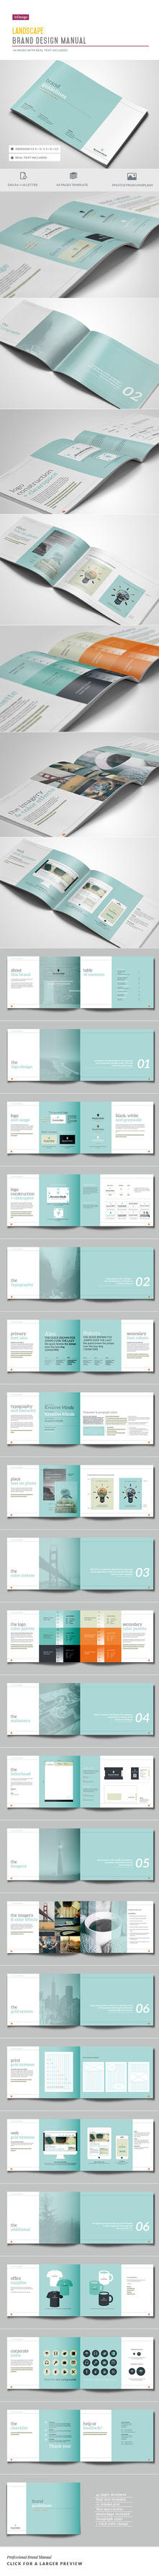 Brand Guidelines - 44 pages by imagearea